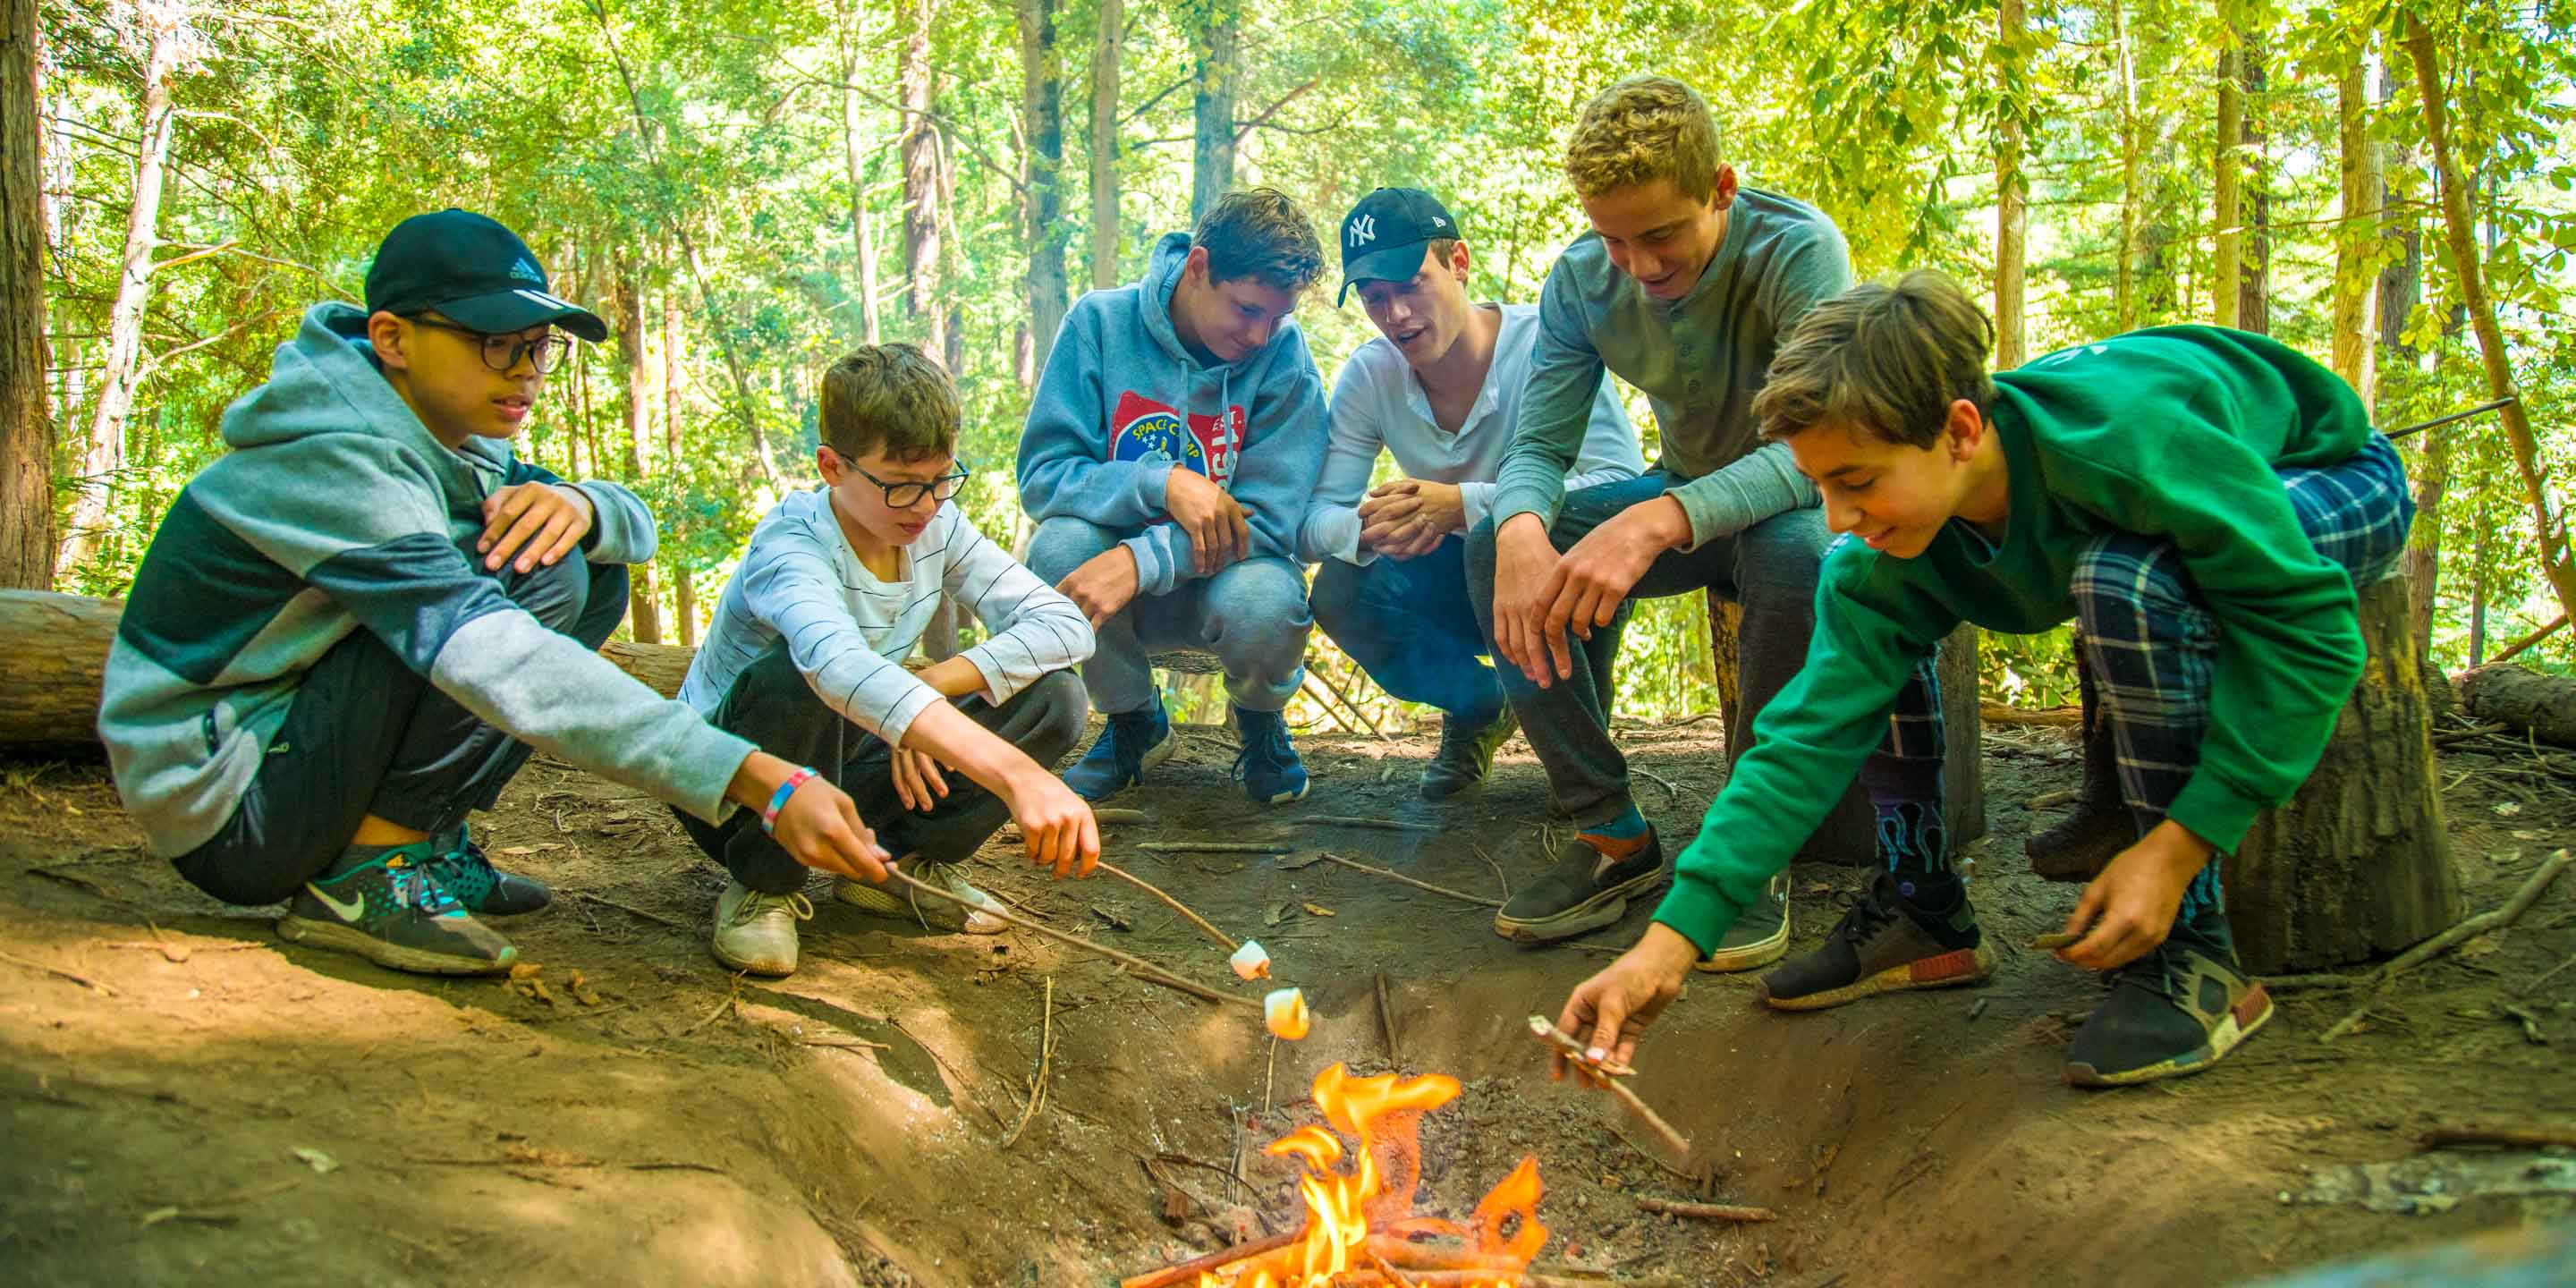 Group of campers roast marshmallows over fire